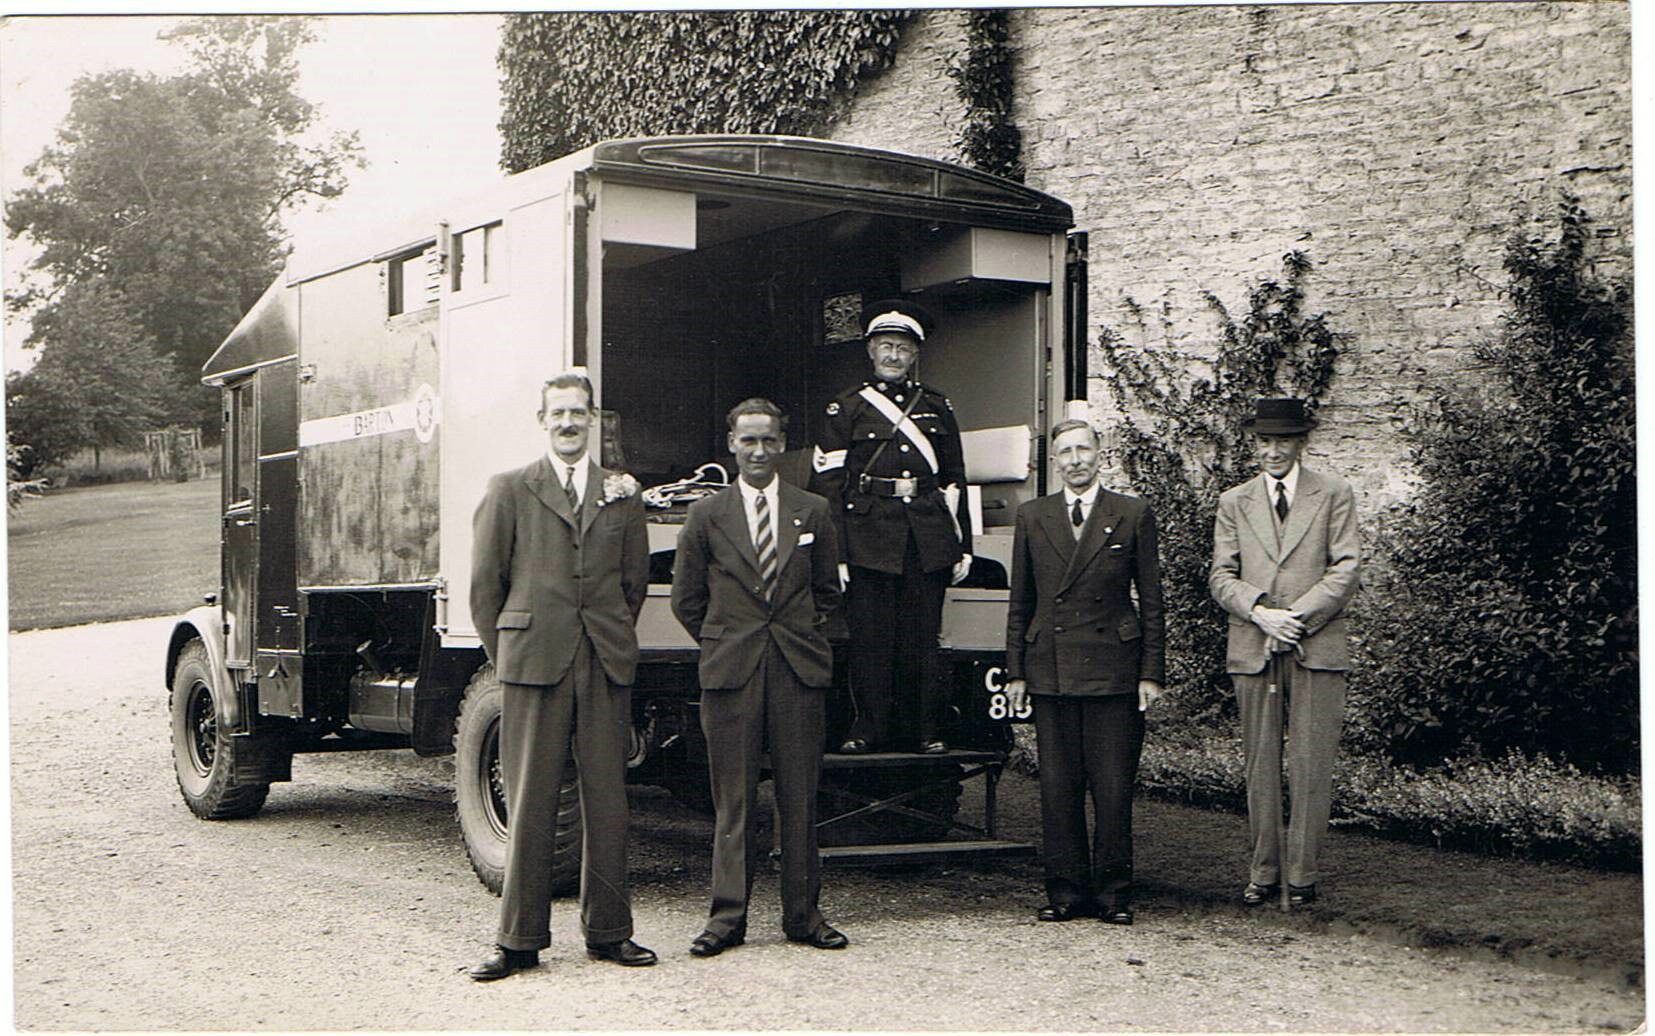 WW II - St. John's ambulance at Church Farm